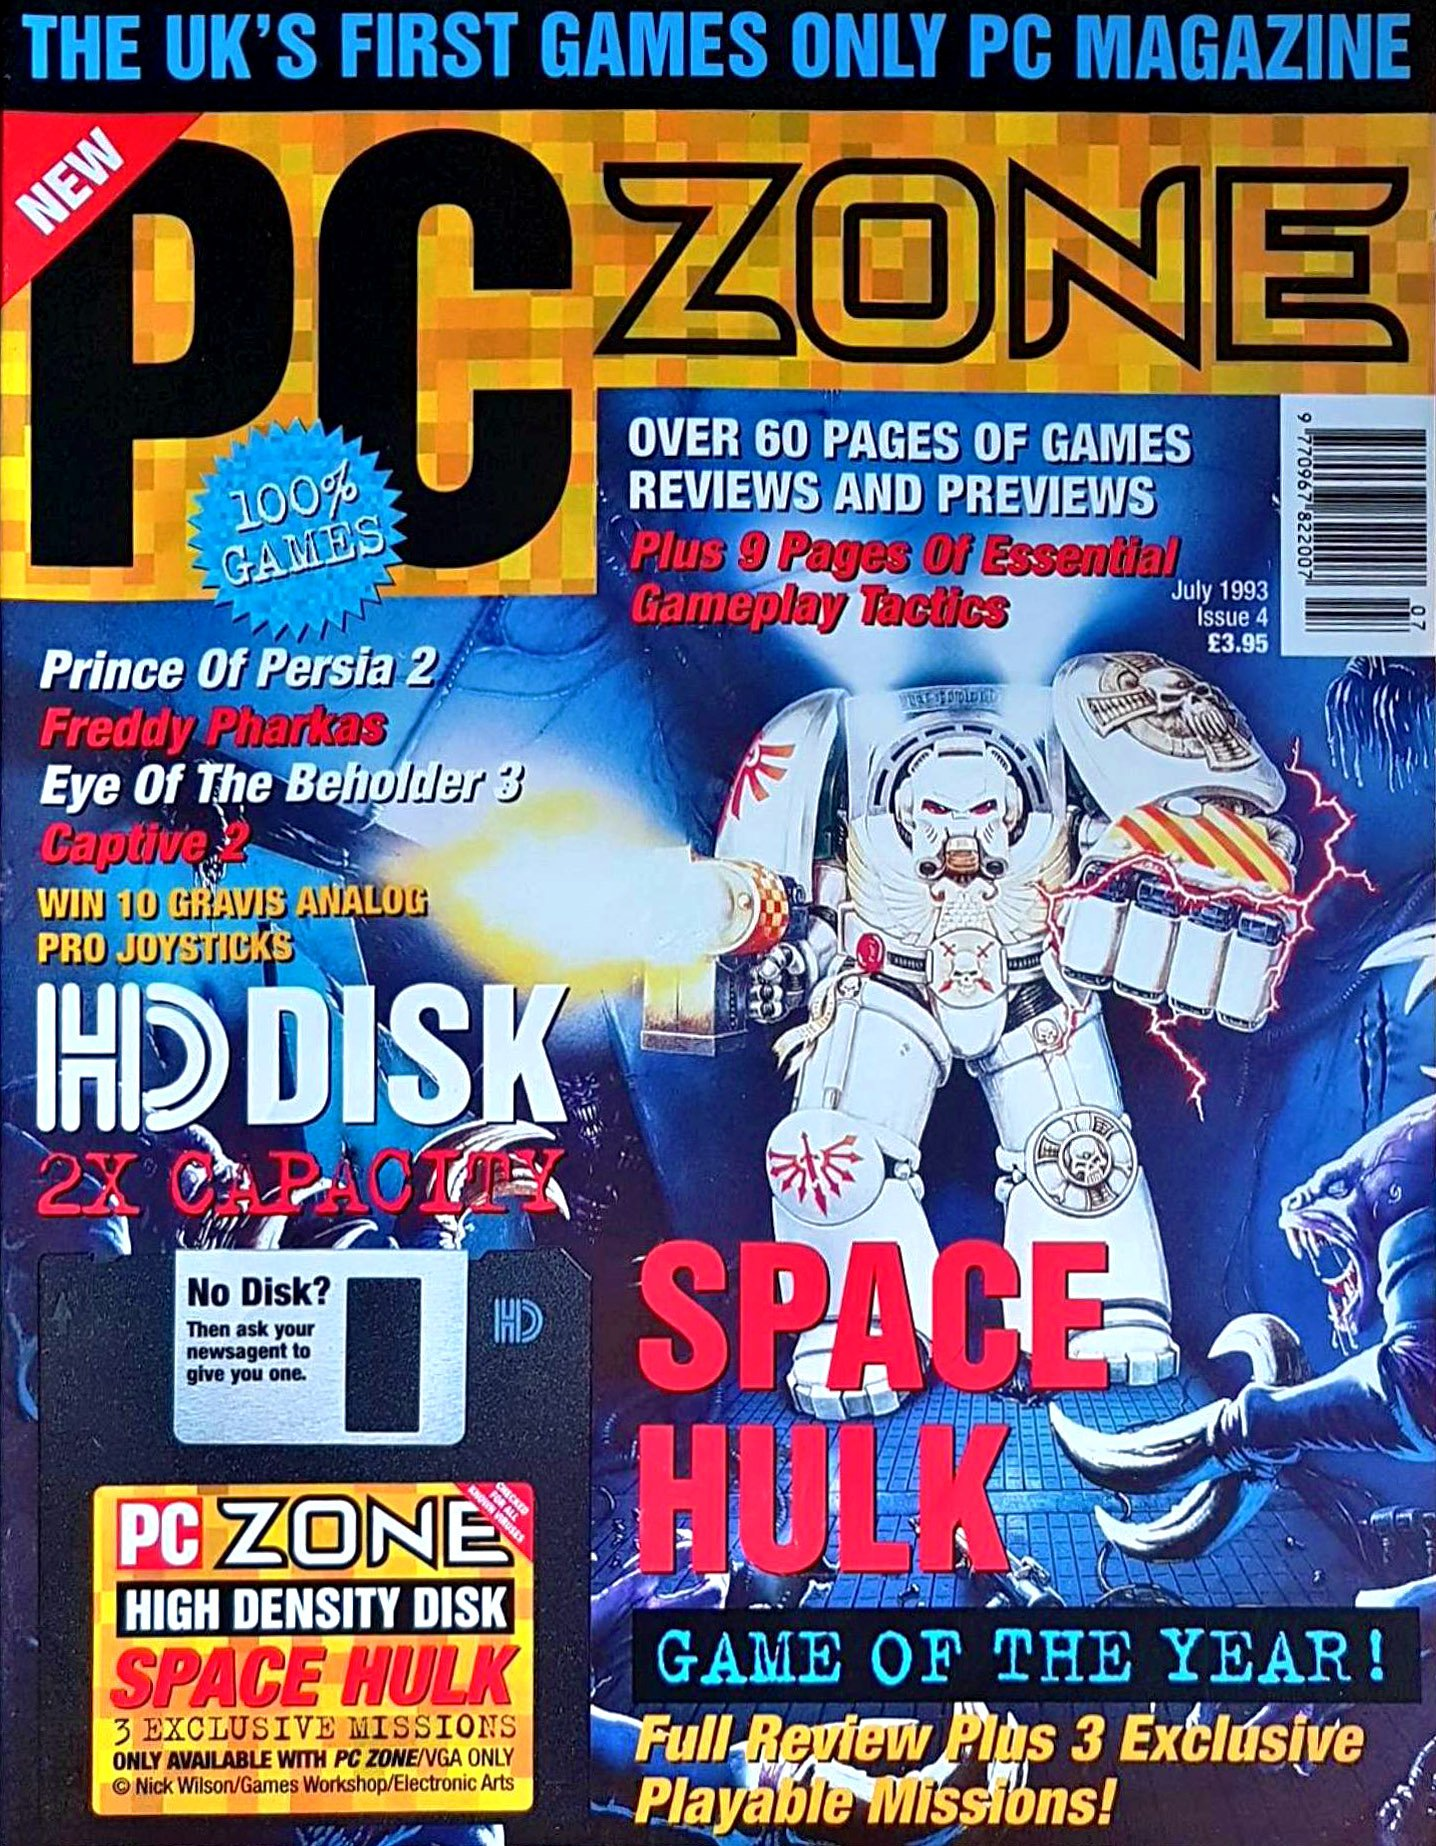 PC Zone Issue 004 (July 1993)